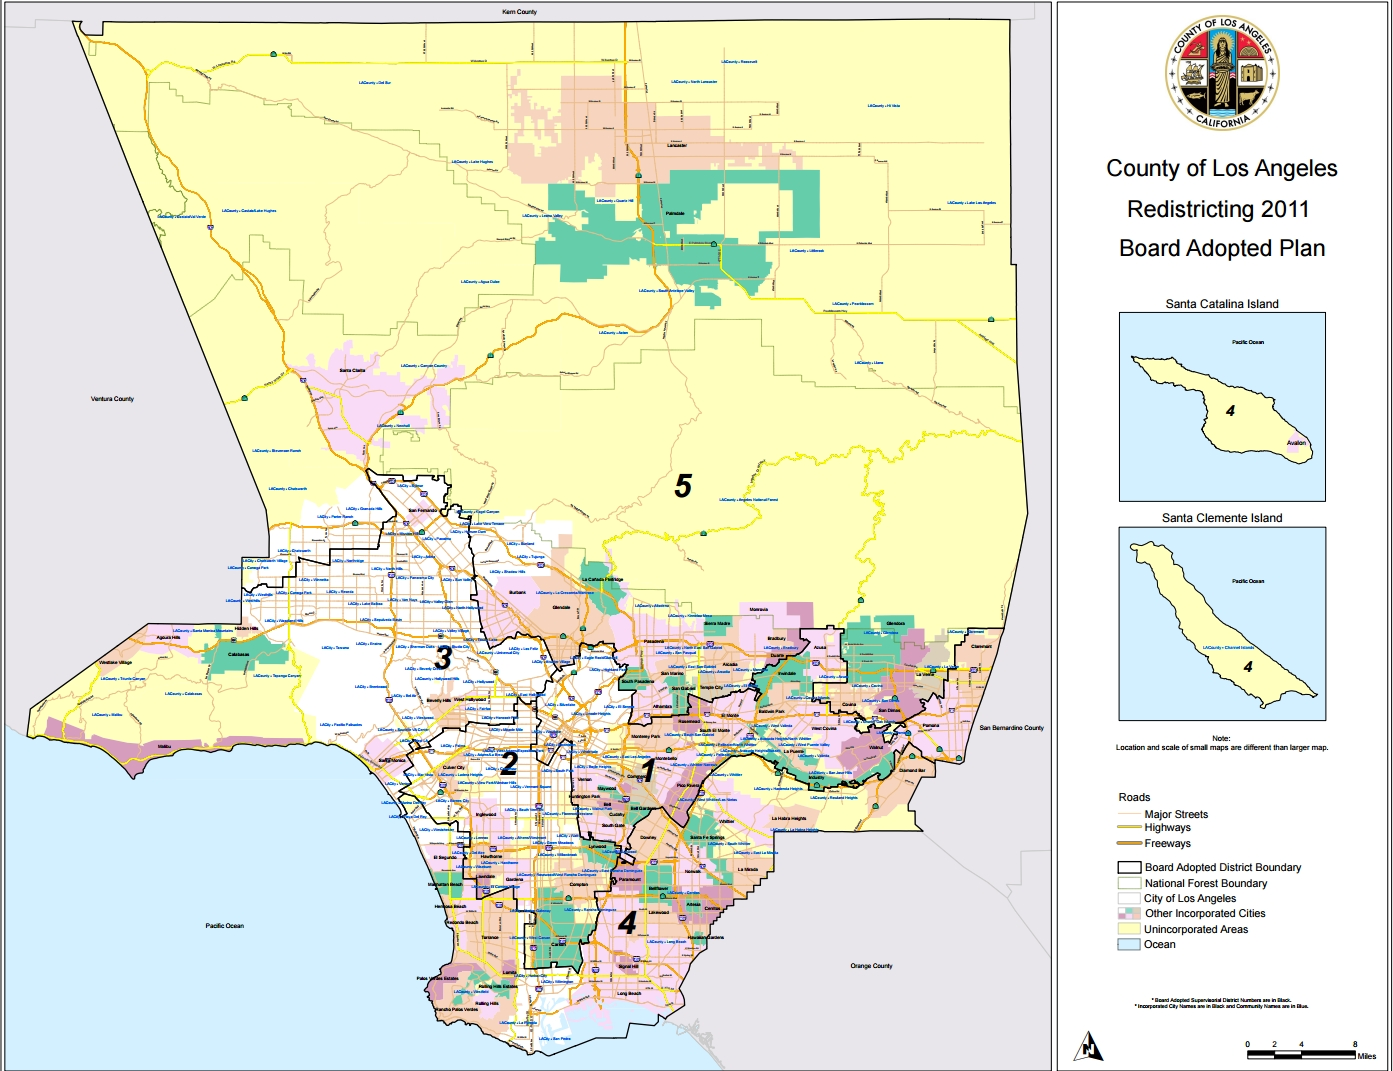 2011 Redistricting Data | Los Angeles County Gis Data Portal with La County Sanitation District Gis Maps